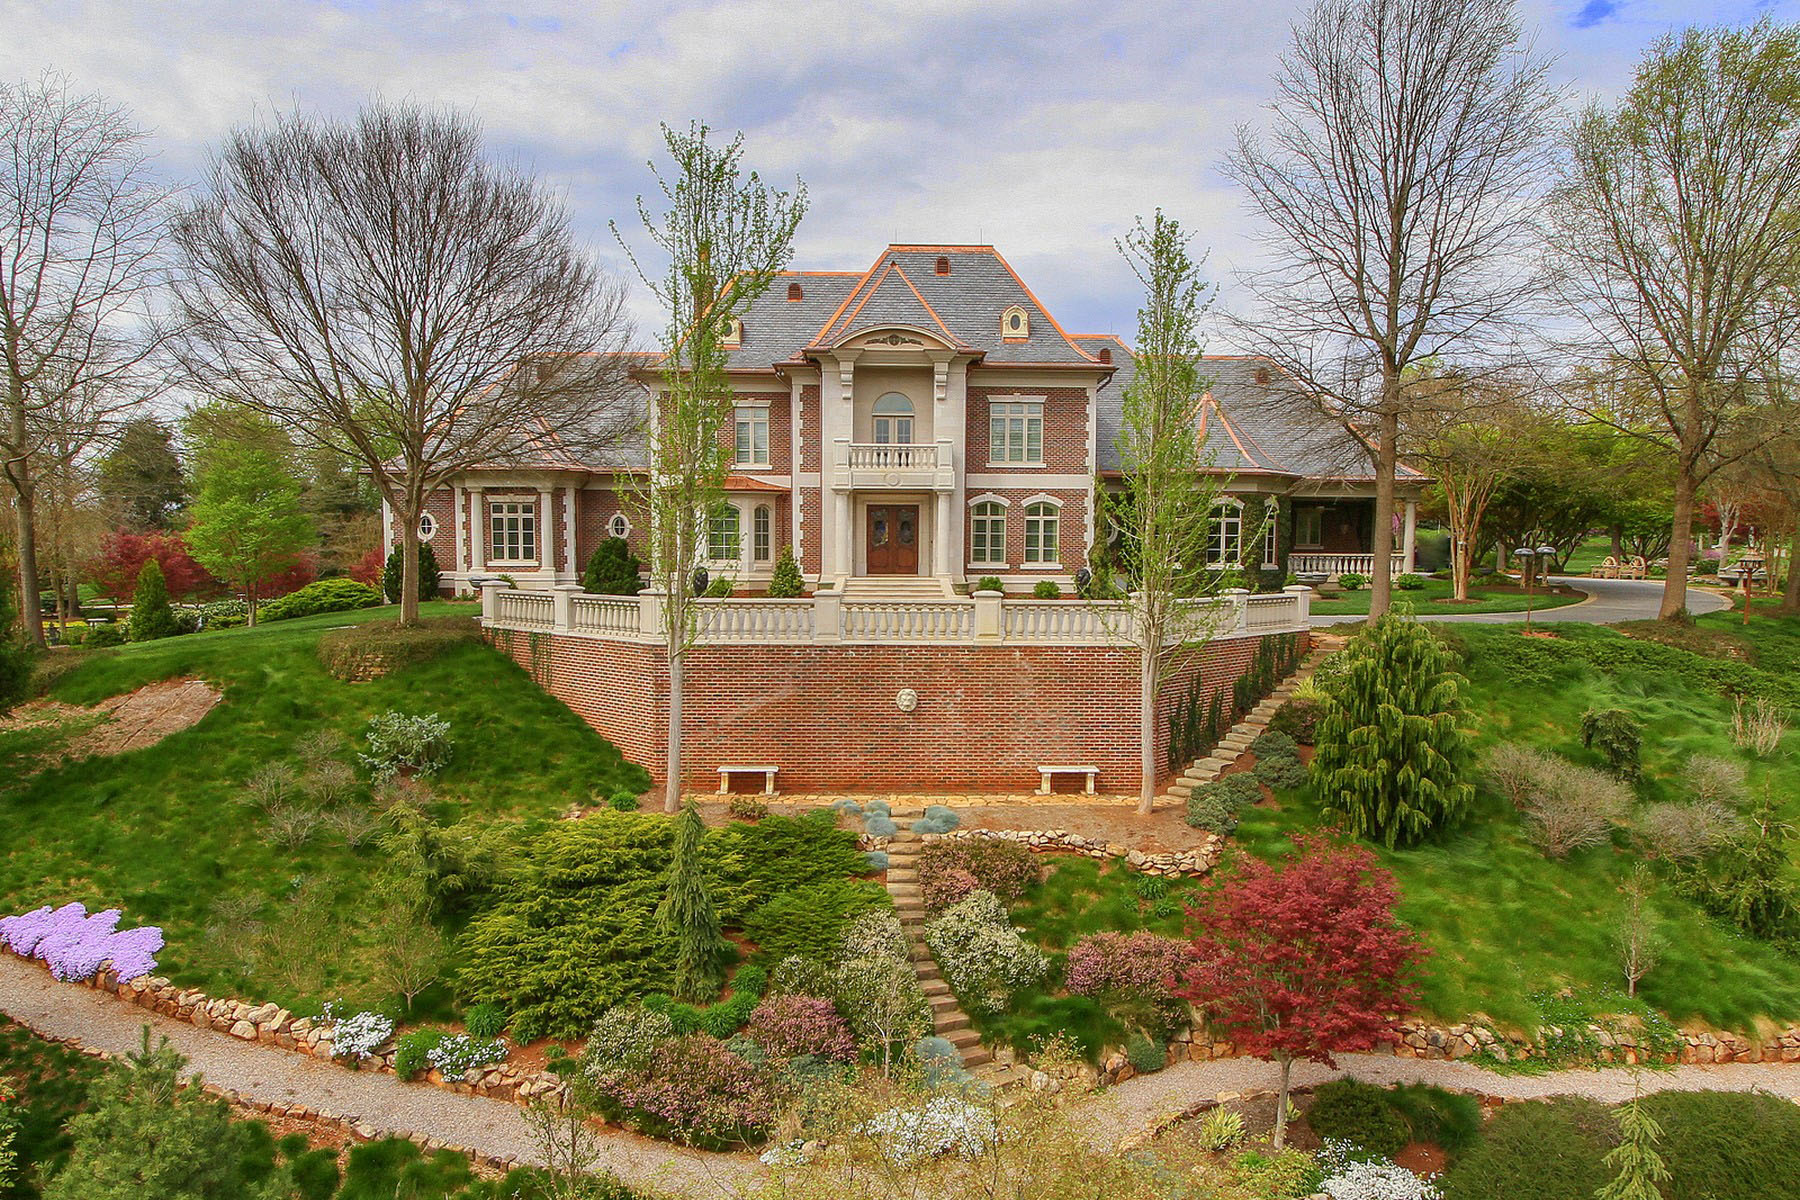 Casa Unifamiliar por un Venta en Longview Estate 1909 Rudder Lane Knoxville, Tennessee 37919 Estados Unidos